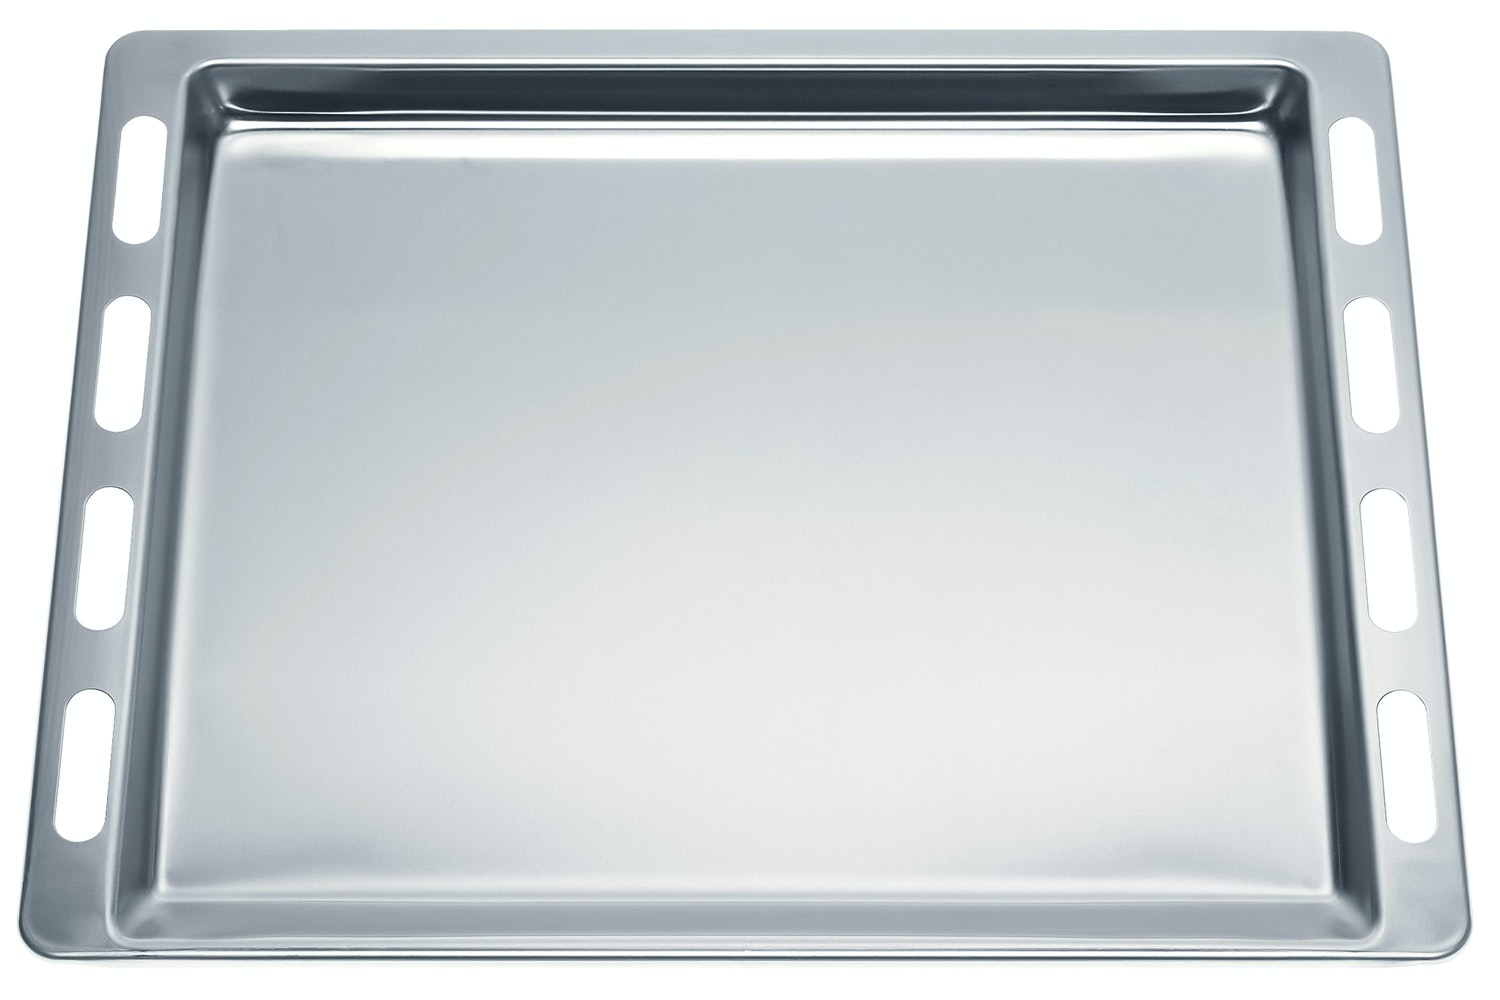 Bosch Built In Electric Single Oven | HBN331E7B